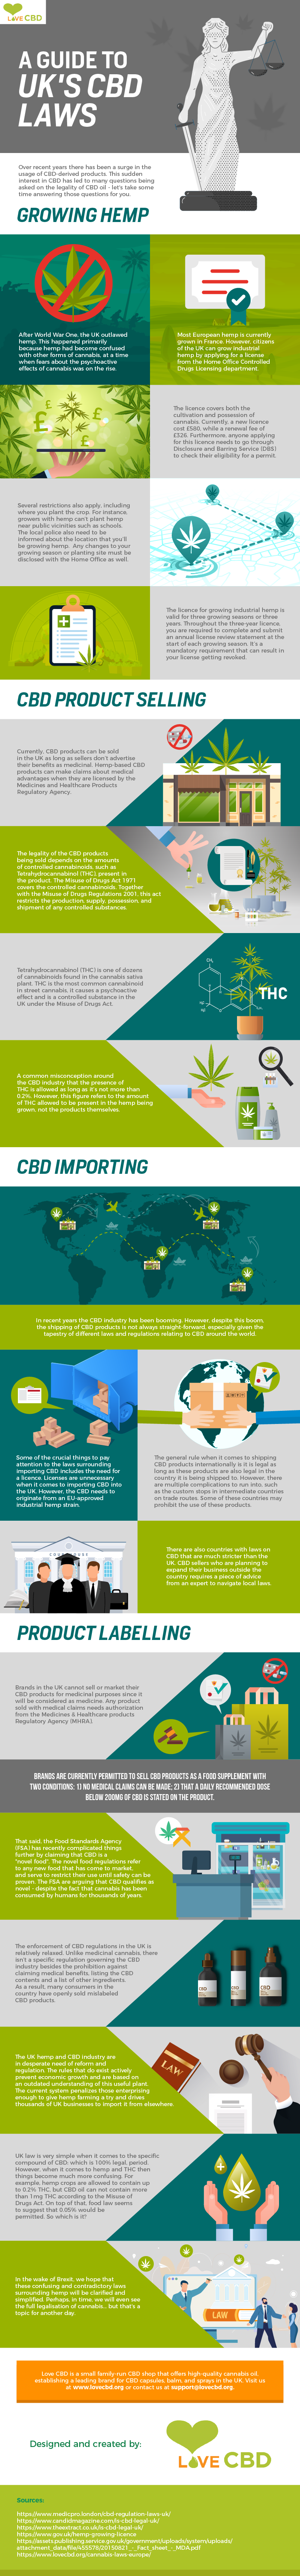 UK CBD Laws